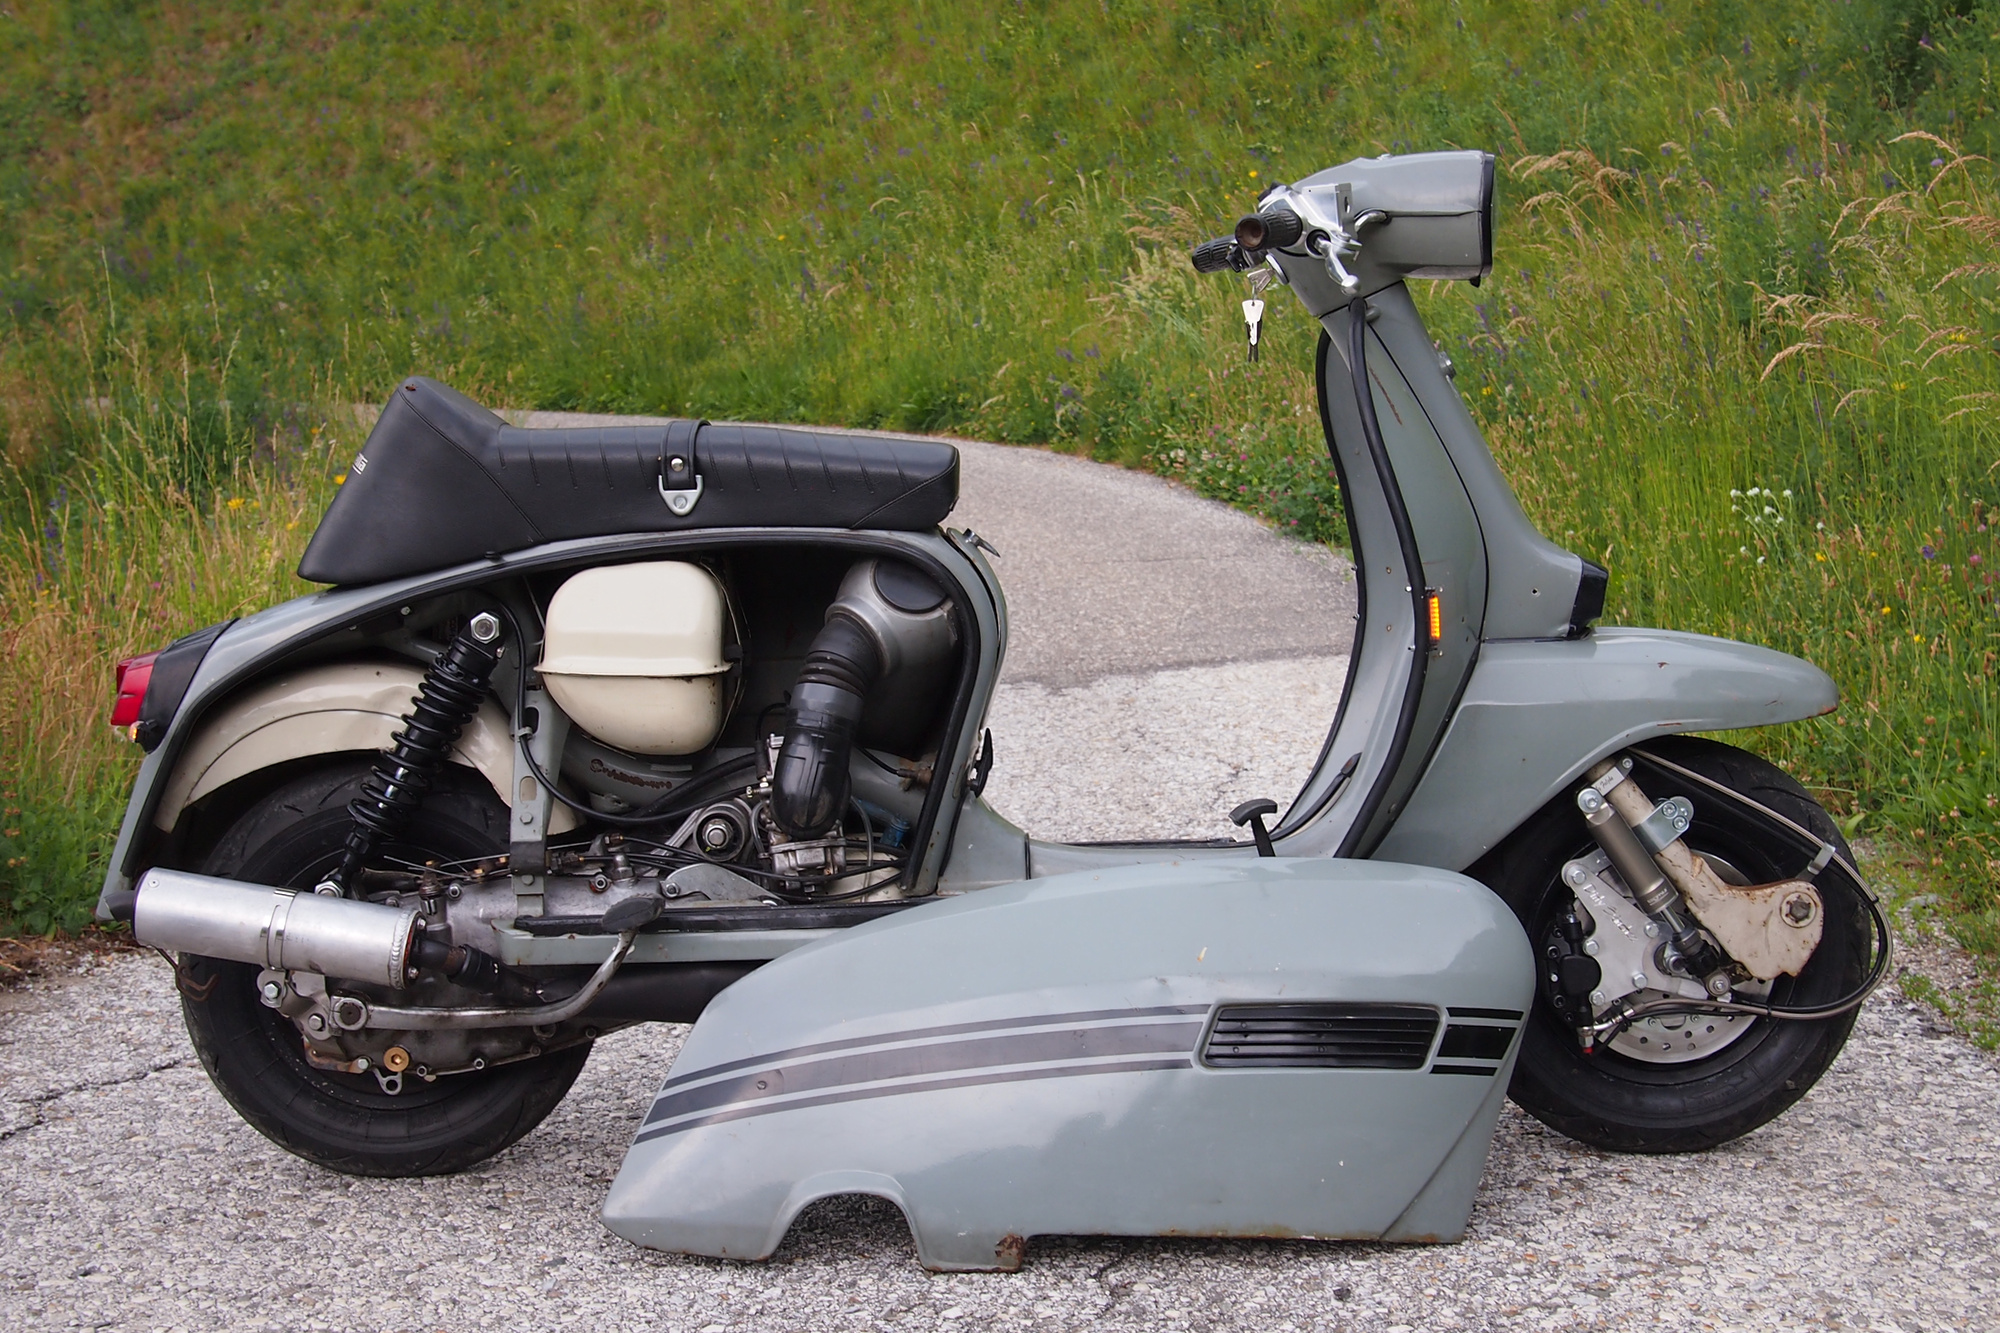 hauben d mmen seite 24 lambretta li gp sx tv etc gsf das vespa lambretta forum. Black Bedroom Furniture Sets. Home Design Ideas